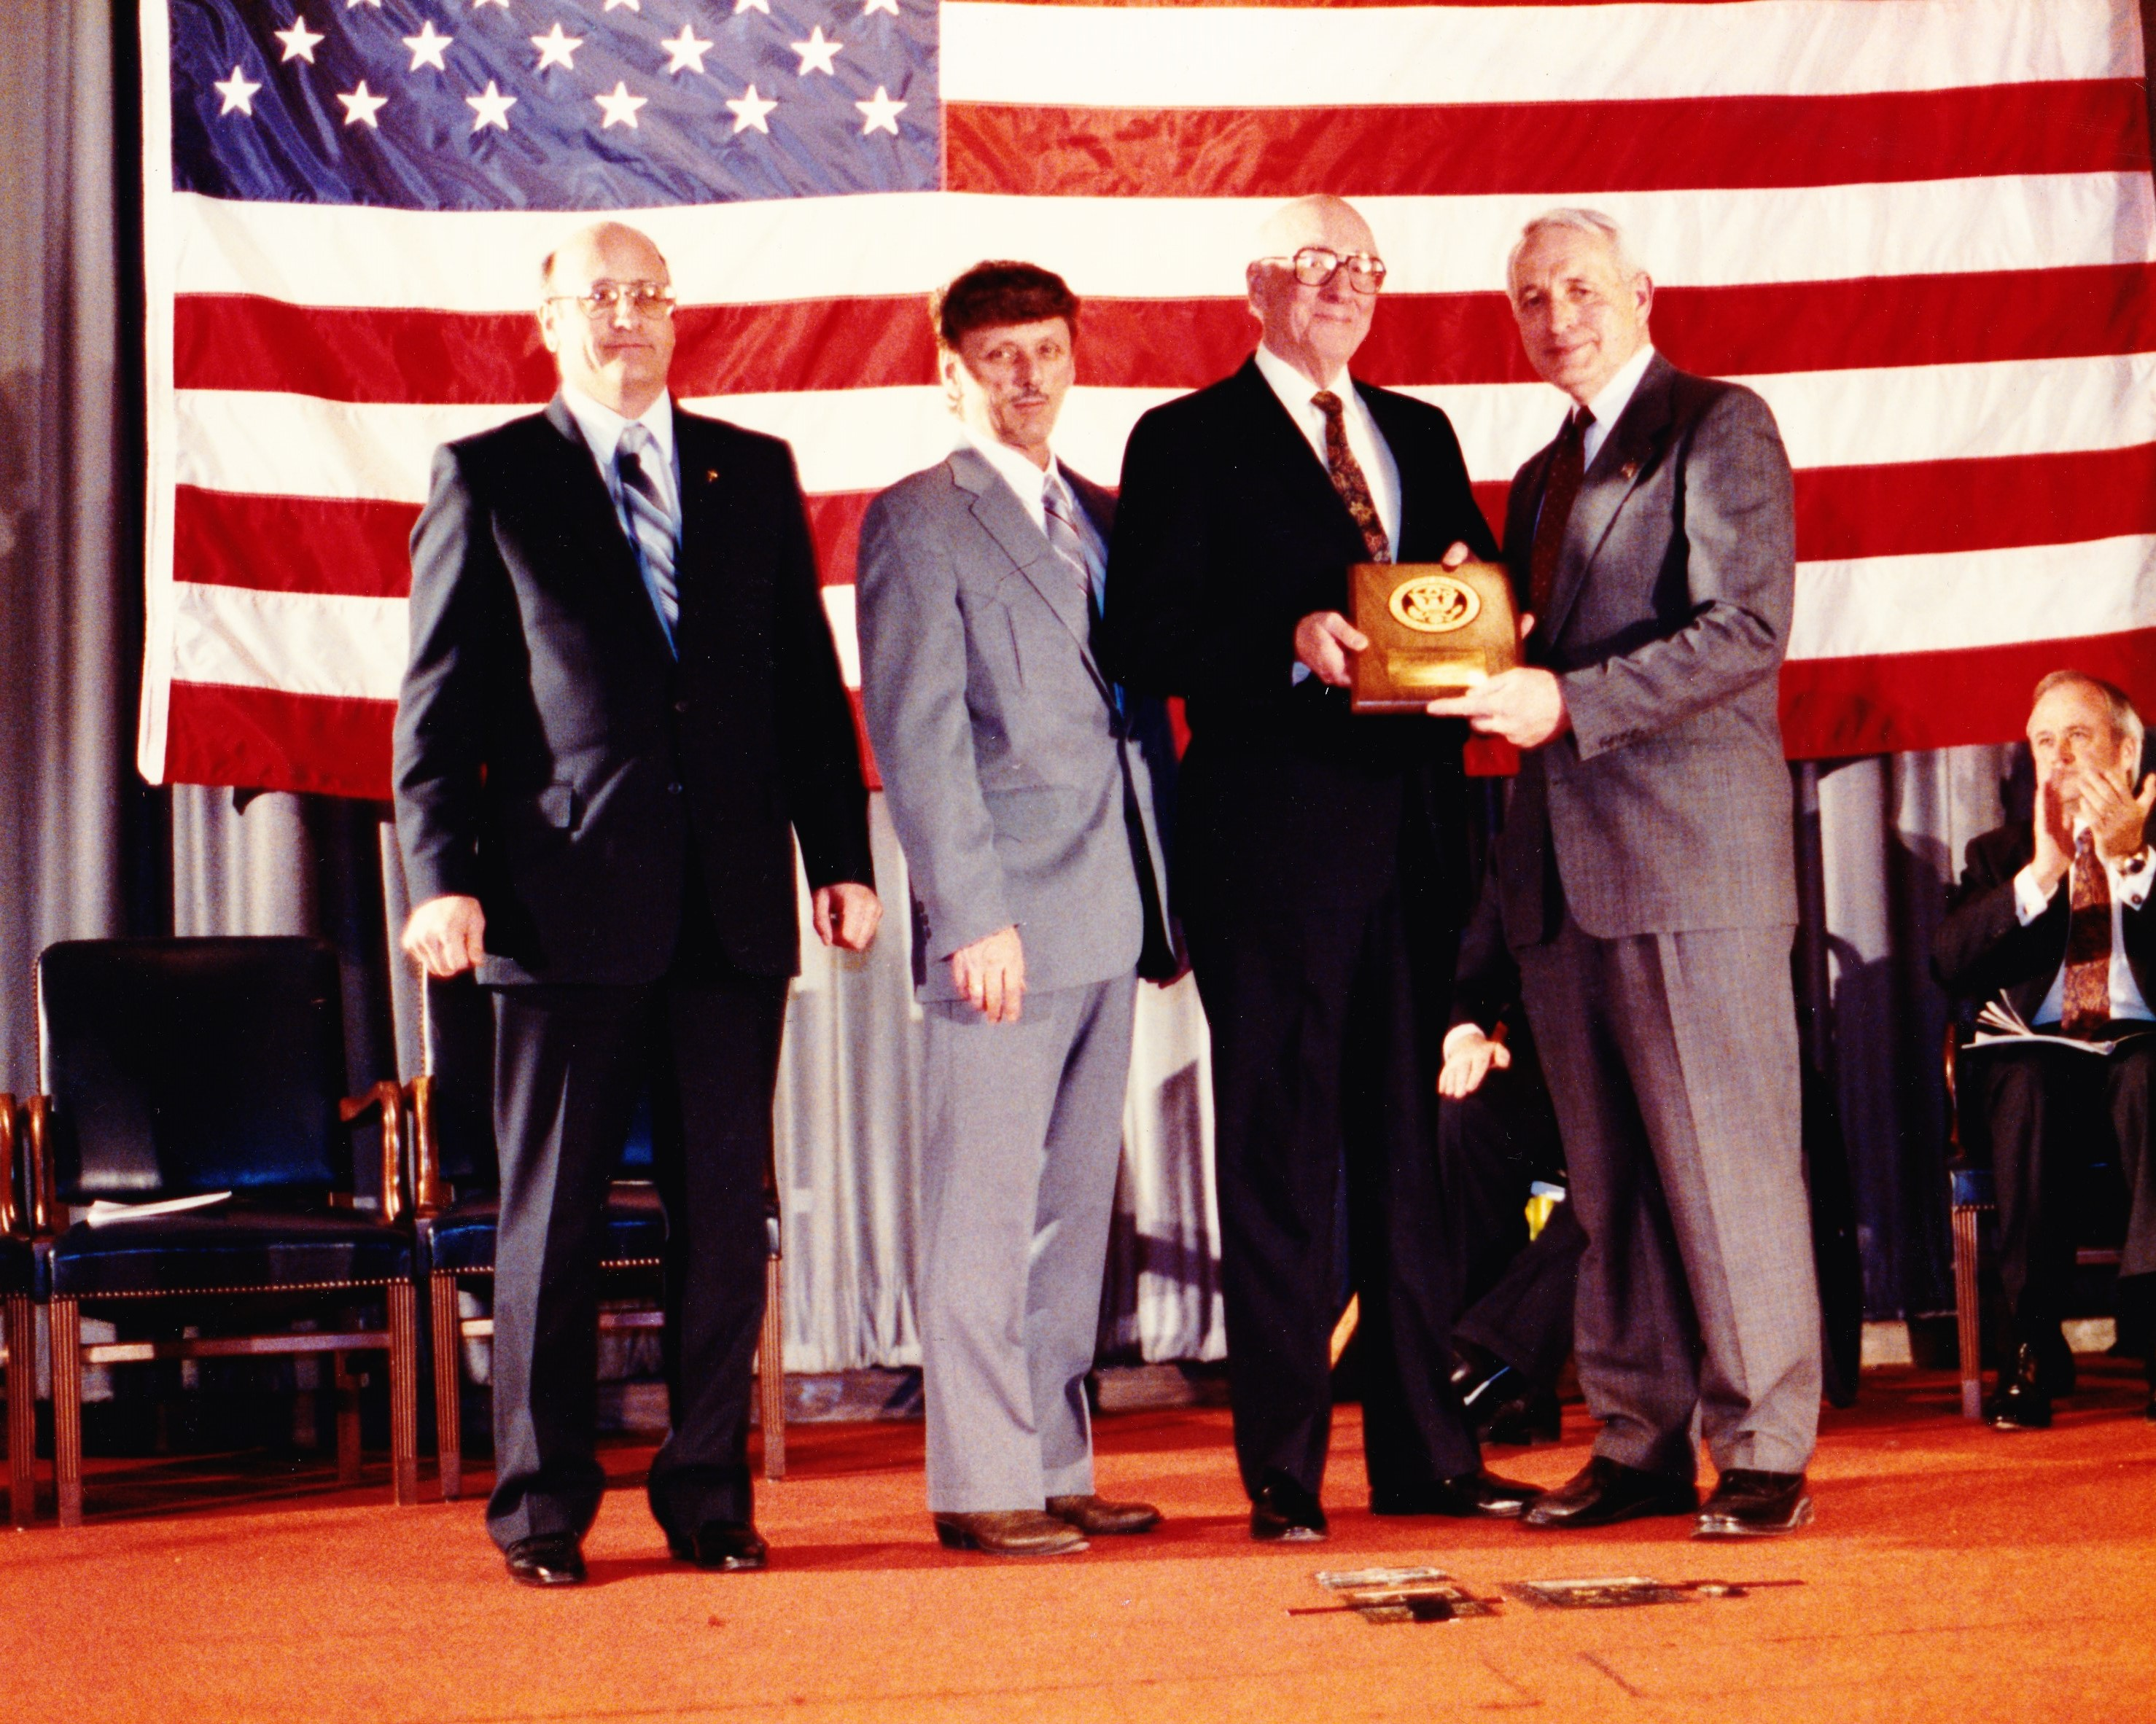 three men receiving an award from another man with the american flag hanging behind them